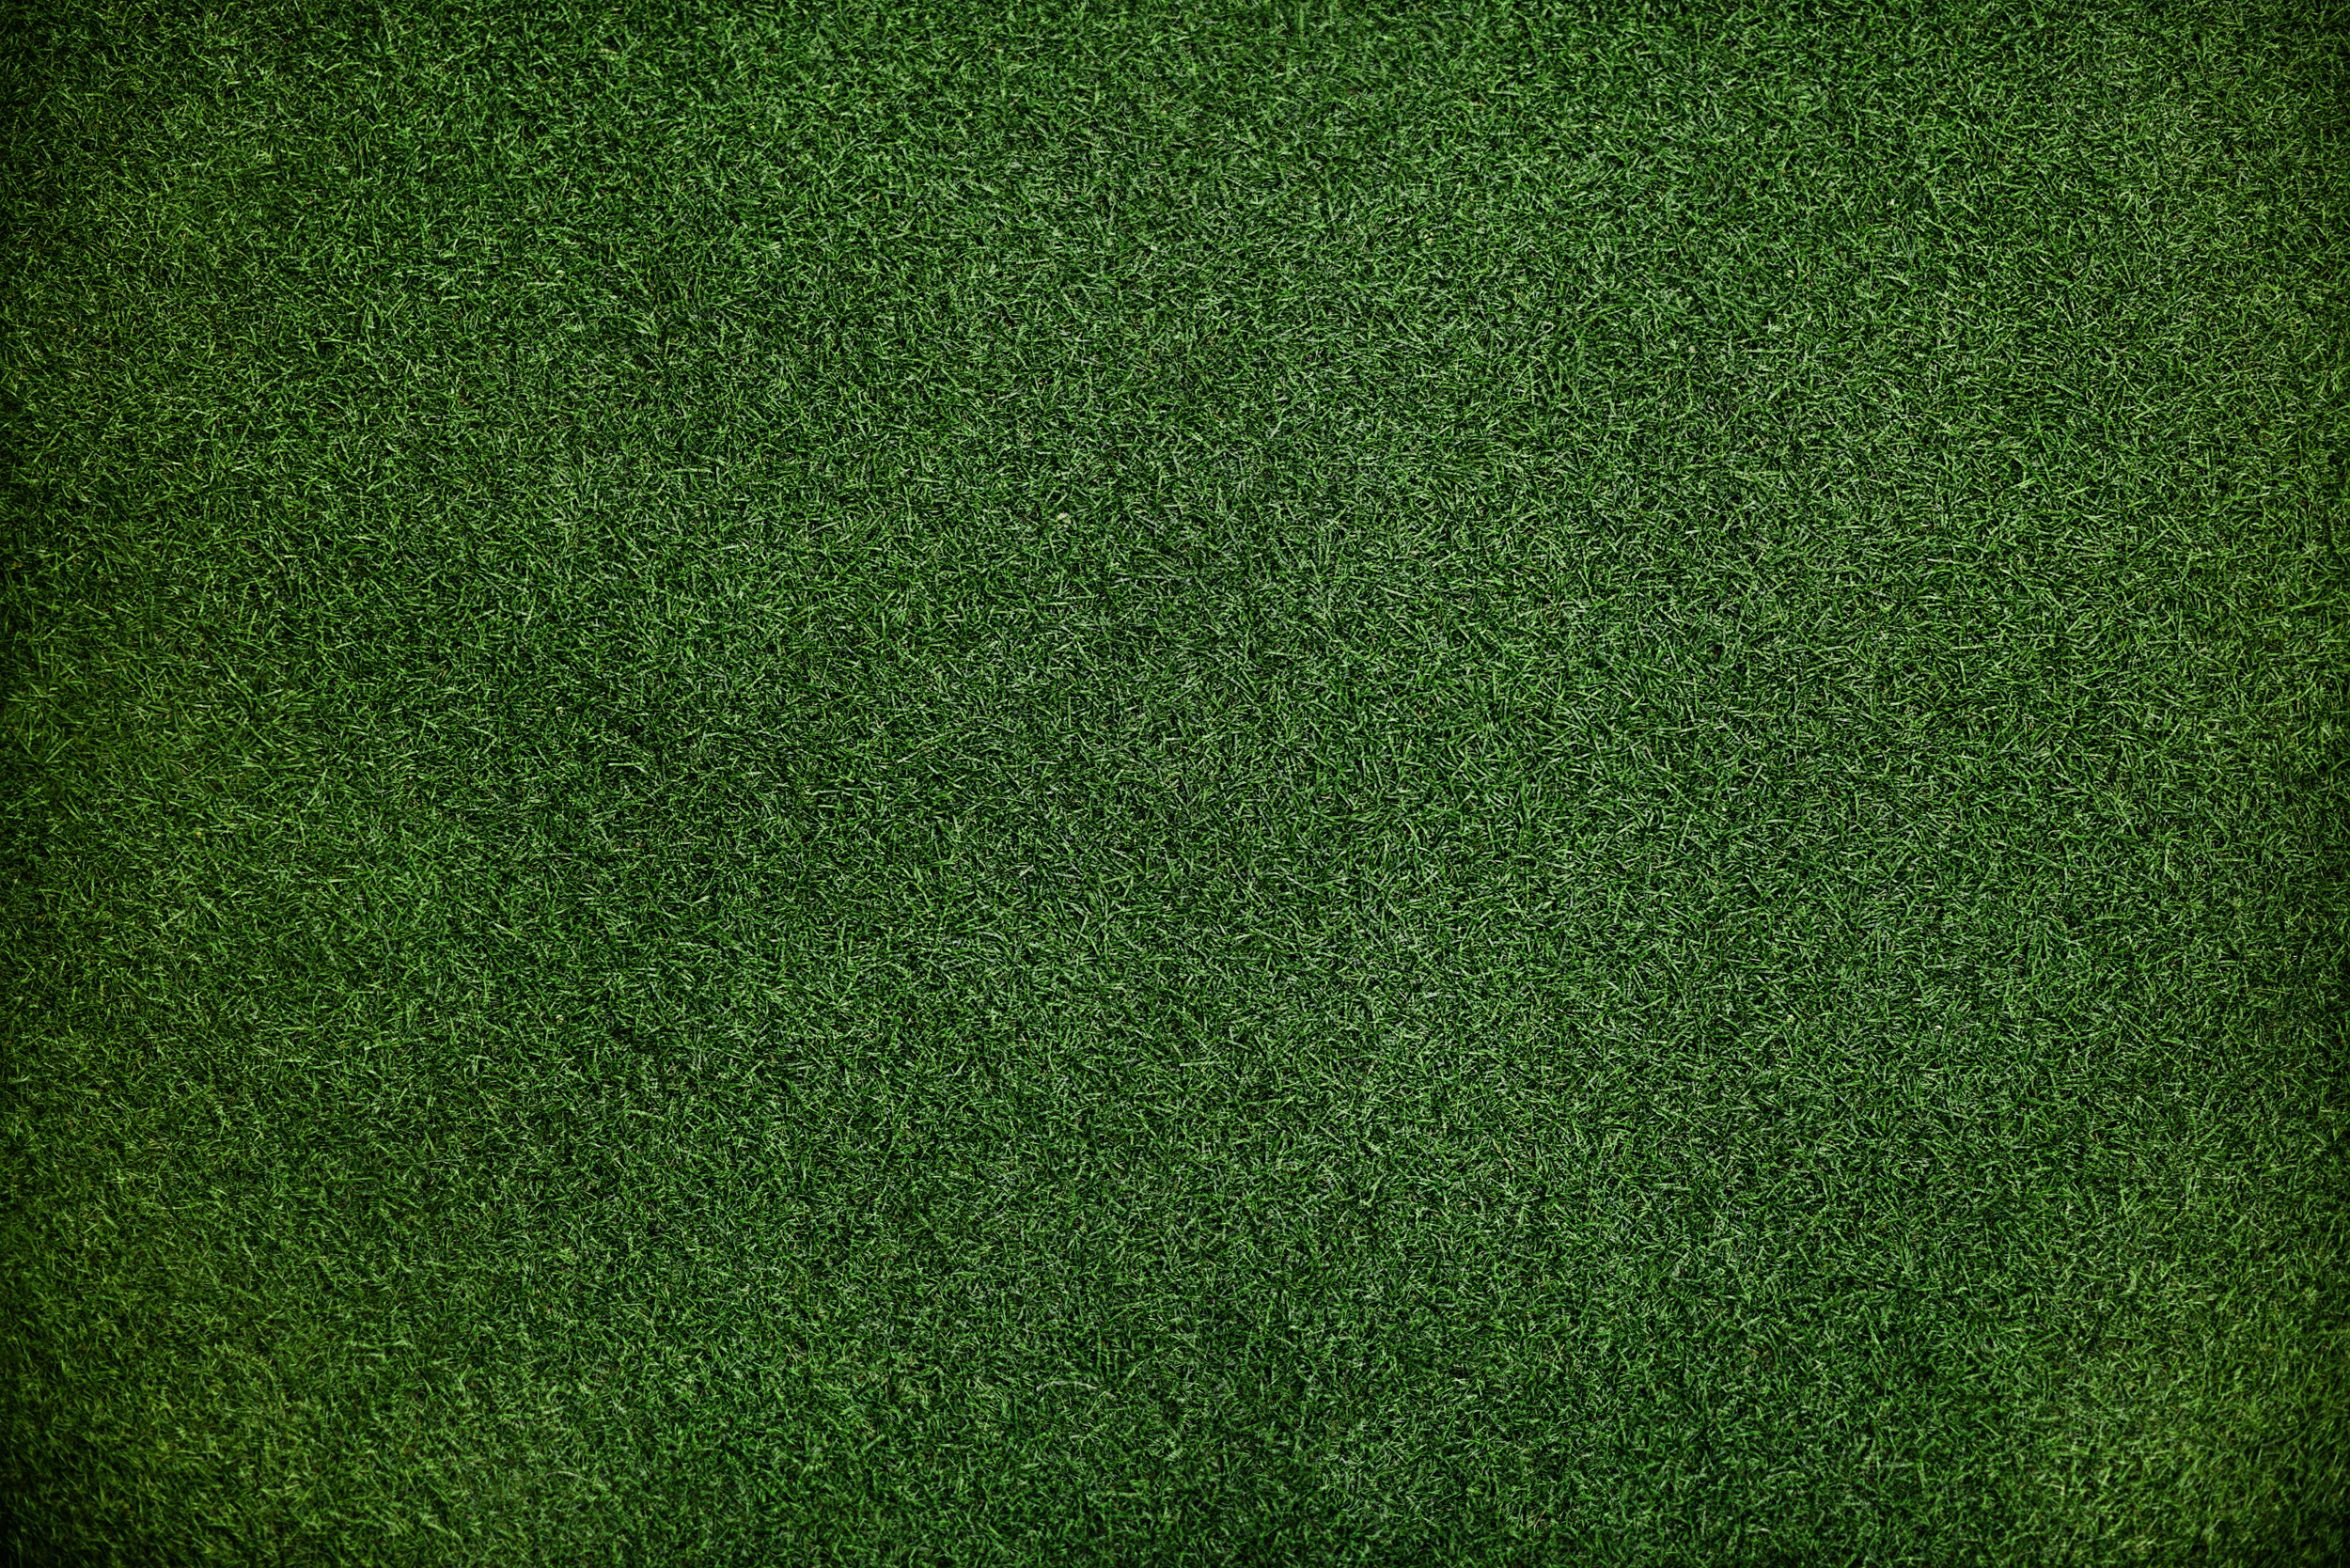 grass texture hd. Brilliant Texture Texture Grass Pattern And Field HD Photo By Rawpixel Rawpixel On  Unsplash Intended Grass Texture Hd